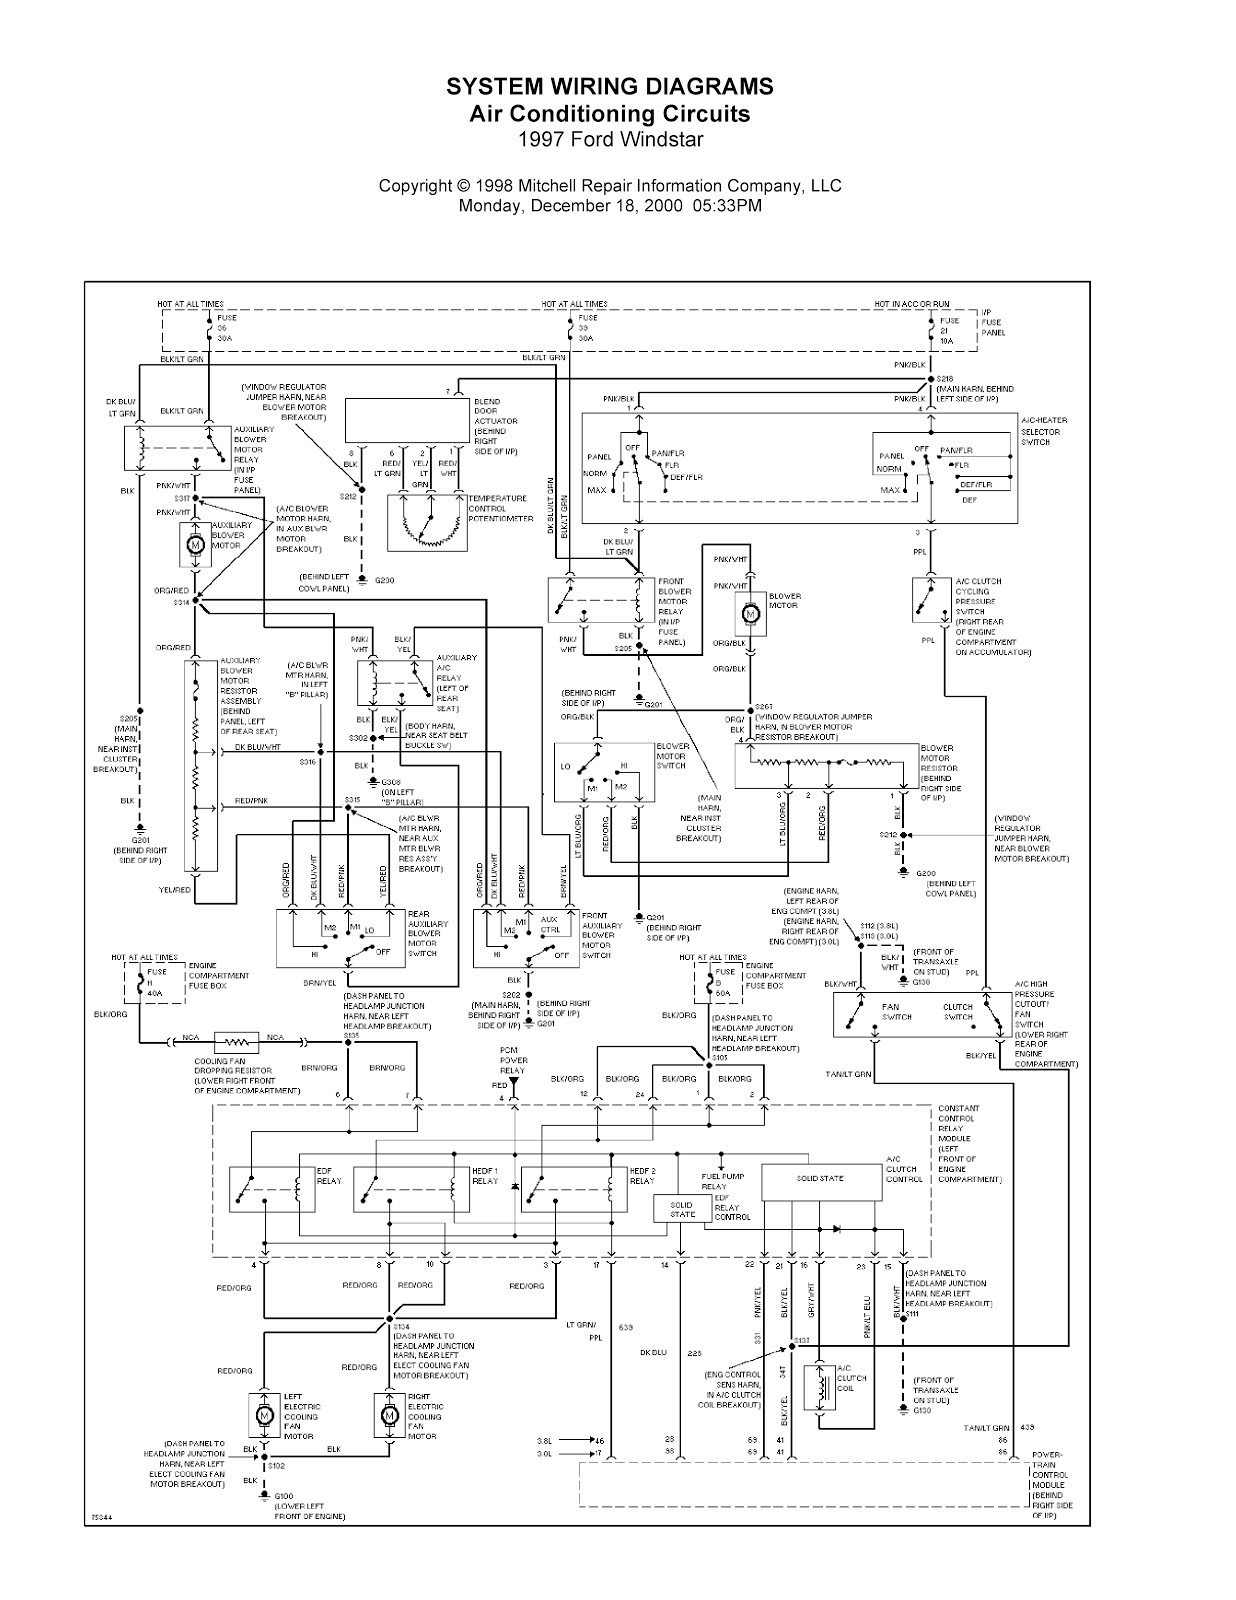 wiring diagrams for ford windstar wiring library diagram a2need wiring diagram for 2002 ford windstar wiring diagram database for 1999 ford windstar wiring